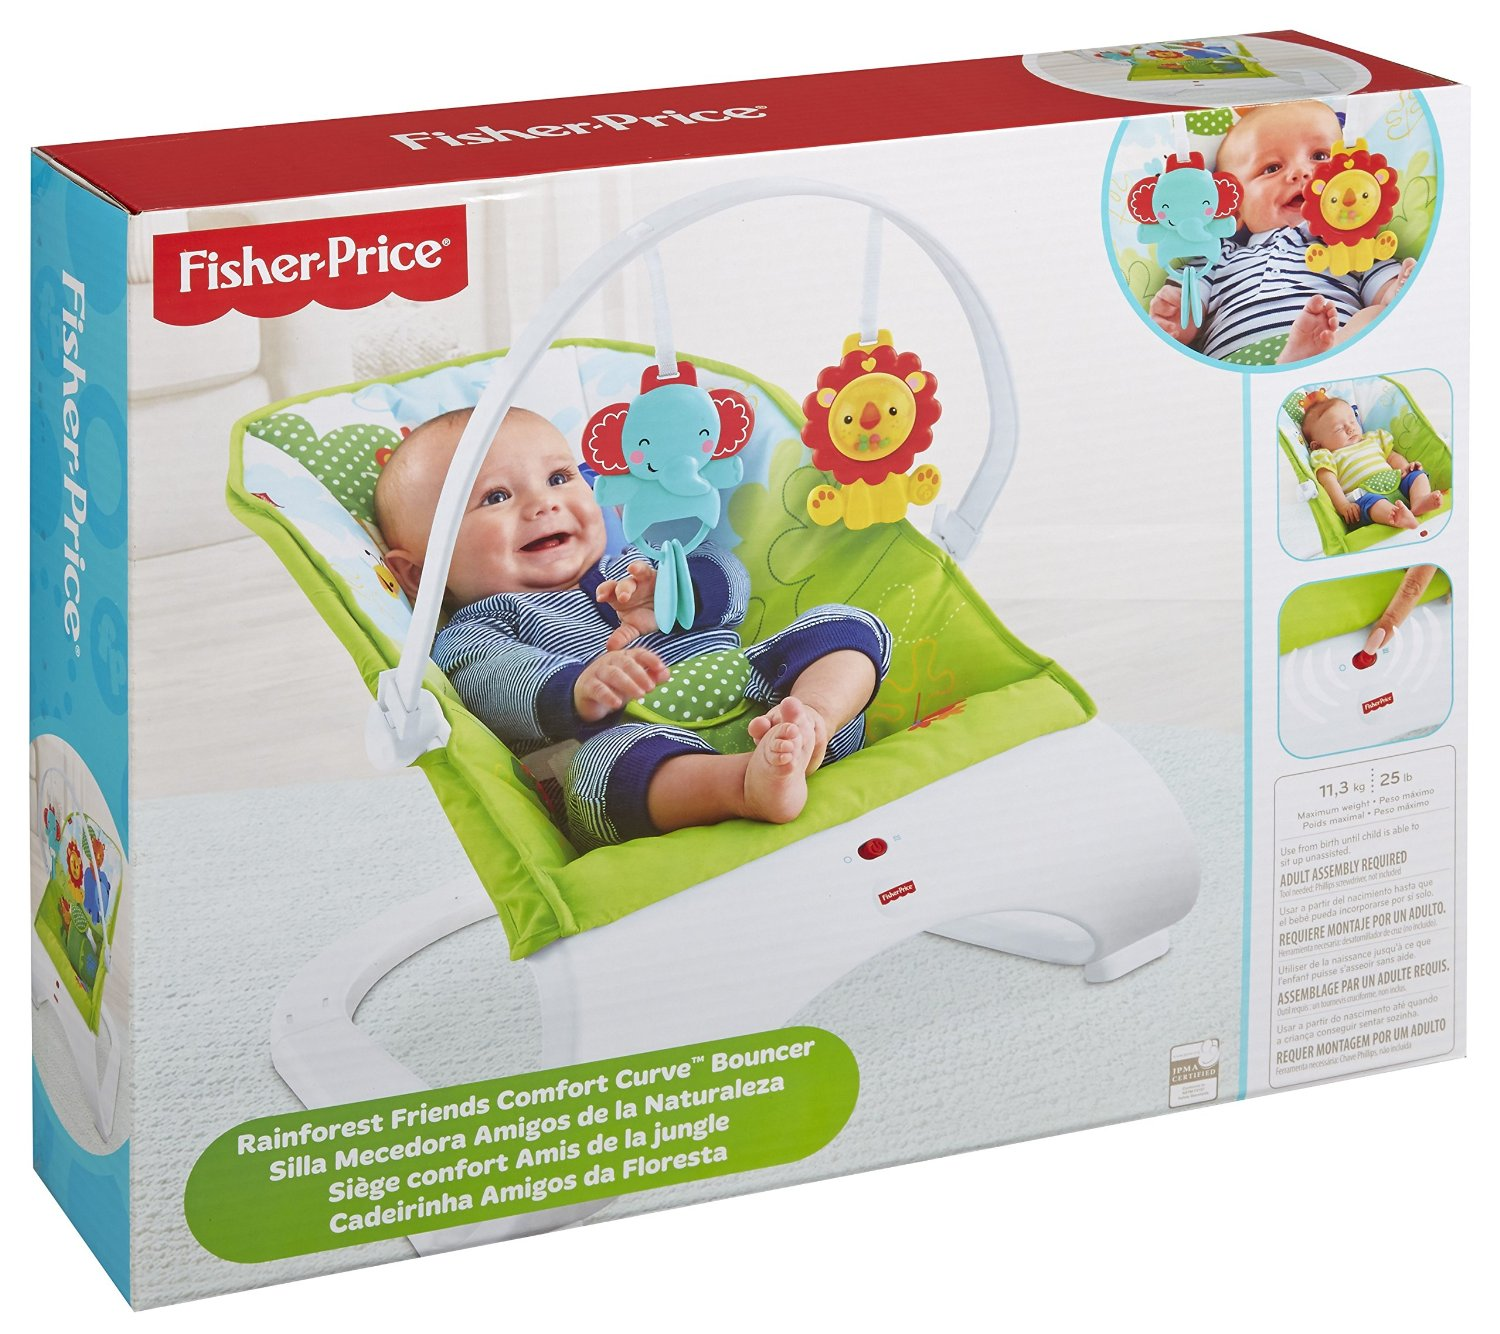 Fisher Price Rainforest Friends Comfort Curve Bouncer Kid Toy